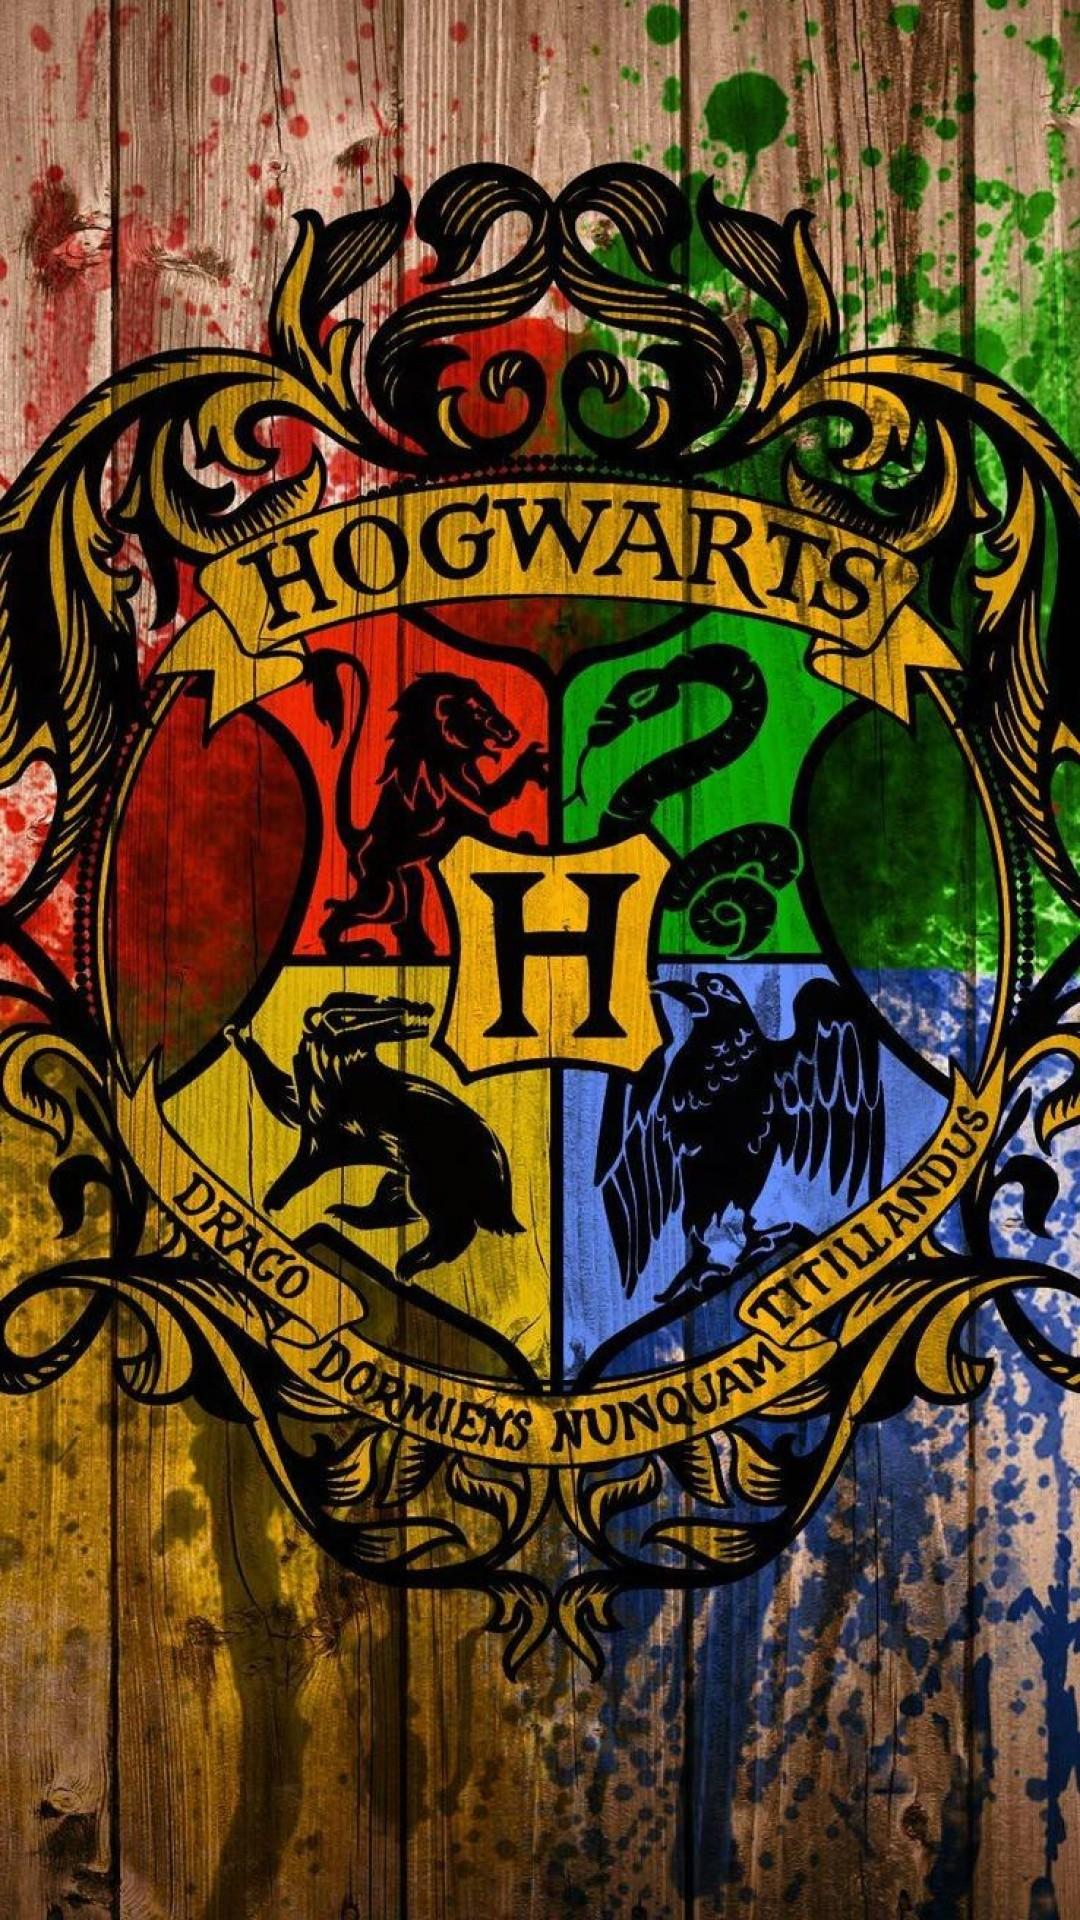 Download Wallpaper Harry Potter Bright - s4_32222_harry_potter_1805b6a80f49d153e3fca2f83054fb9c_raw  You Should Have_906418.jpg